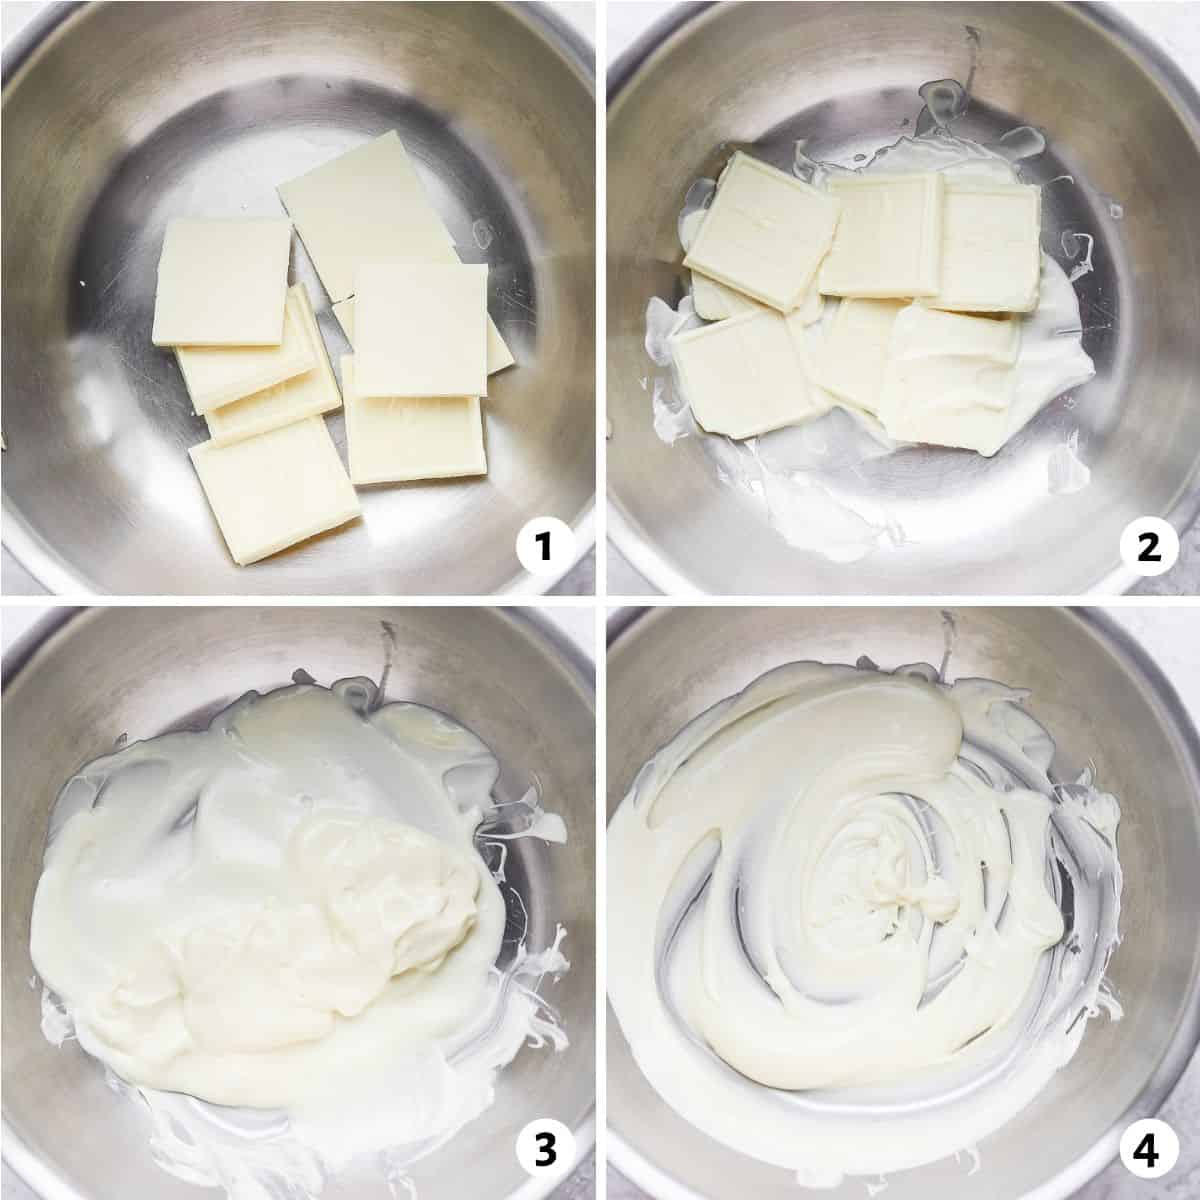 4 image collage of how to melt white chocolate in metal bowl on stovertop